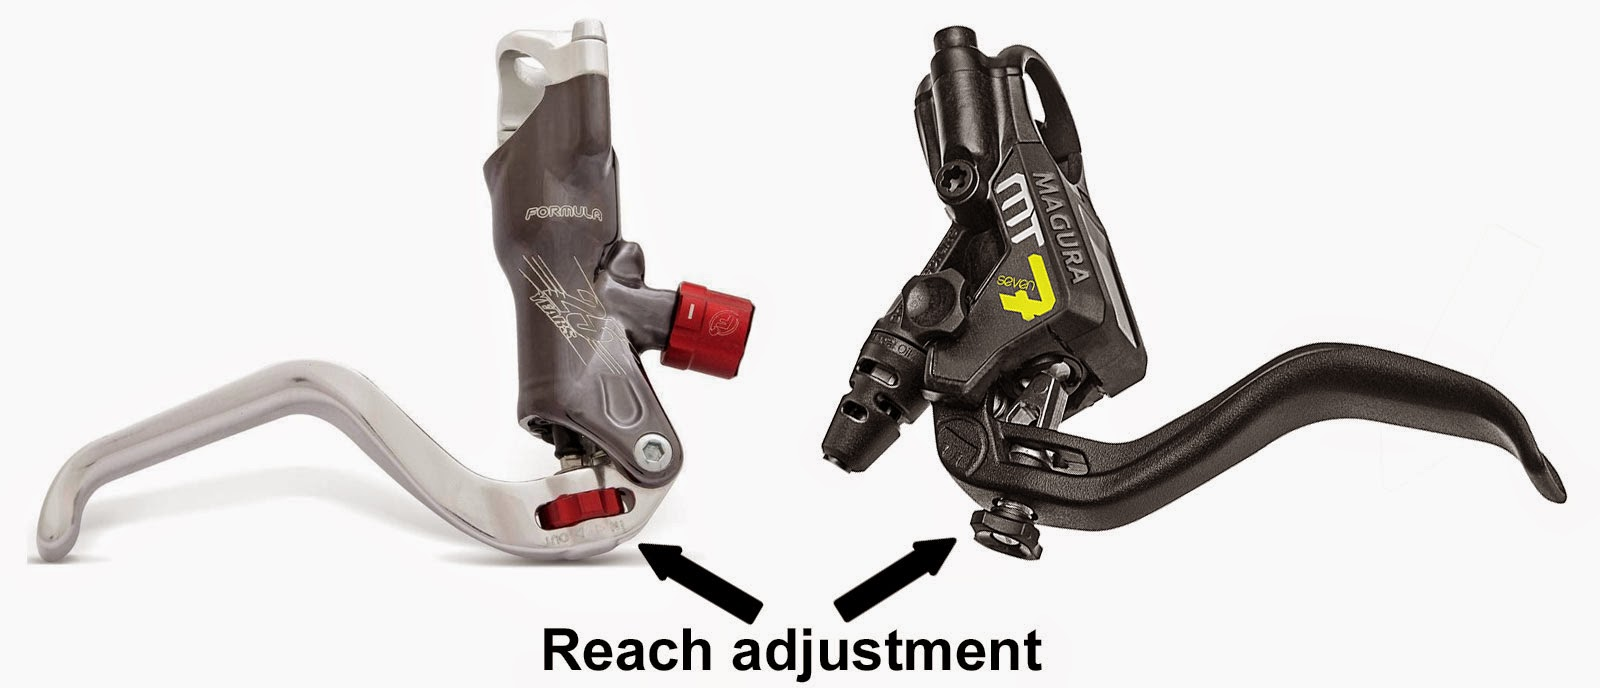 Reach adjustment